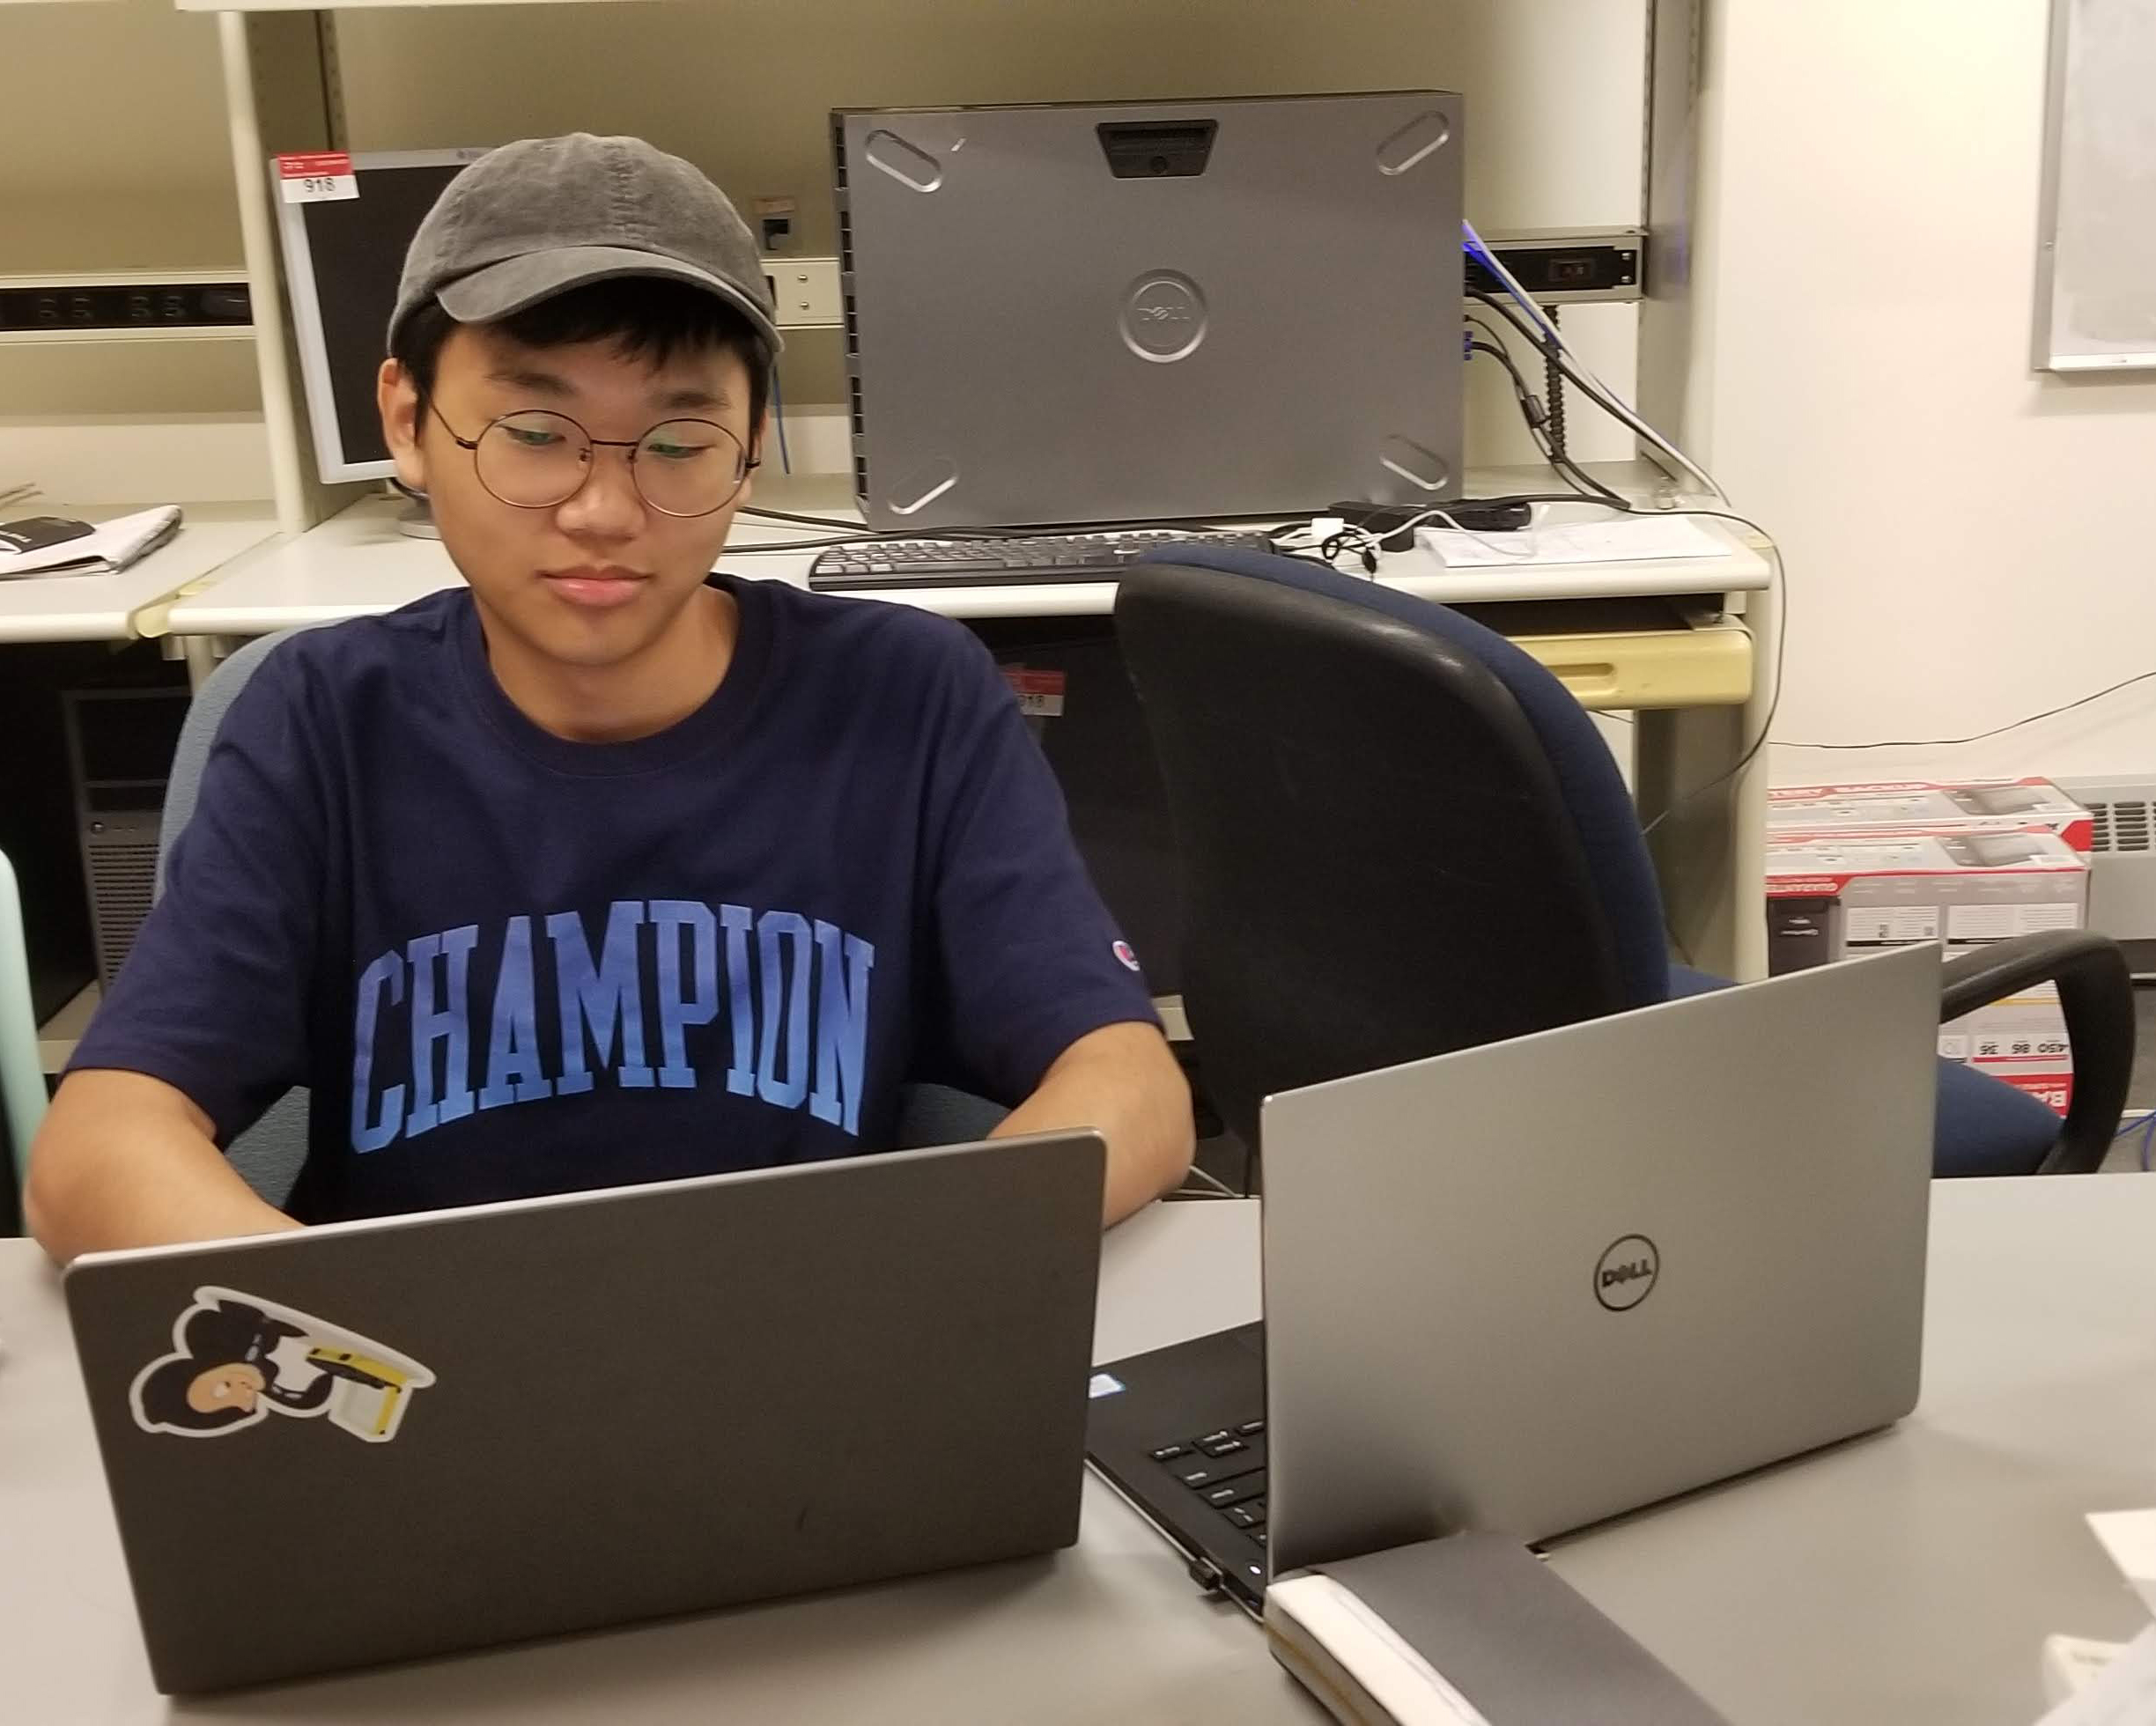 student working on laptops